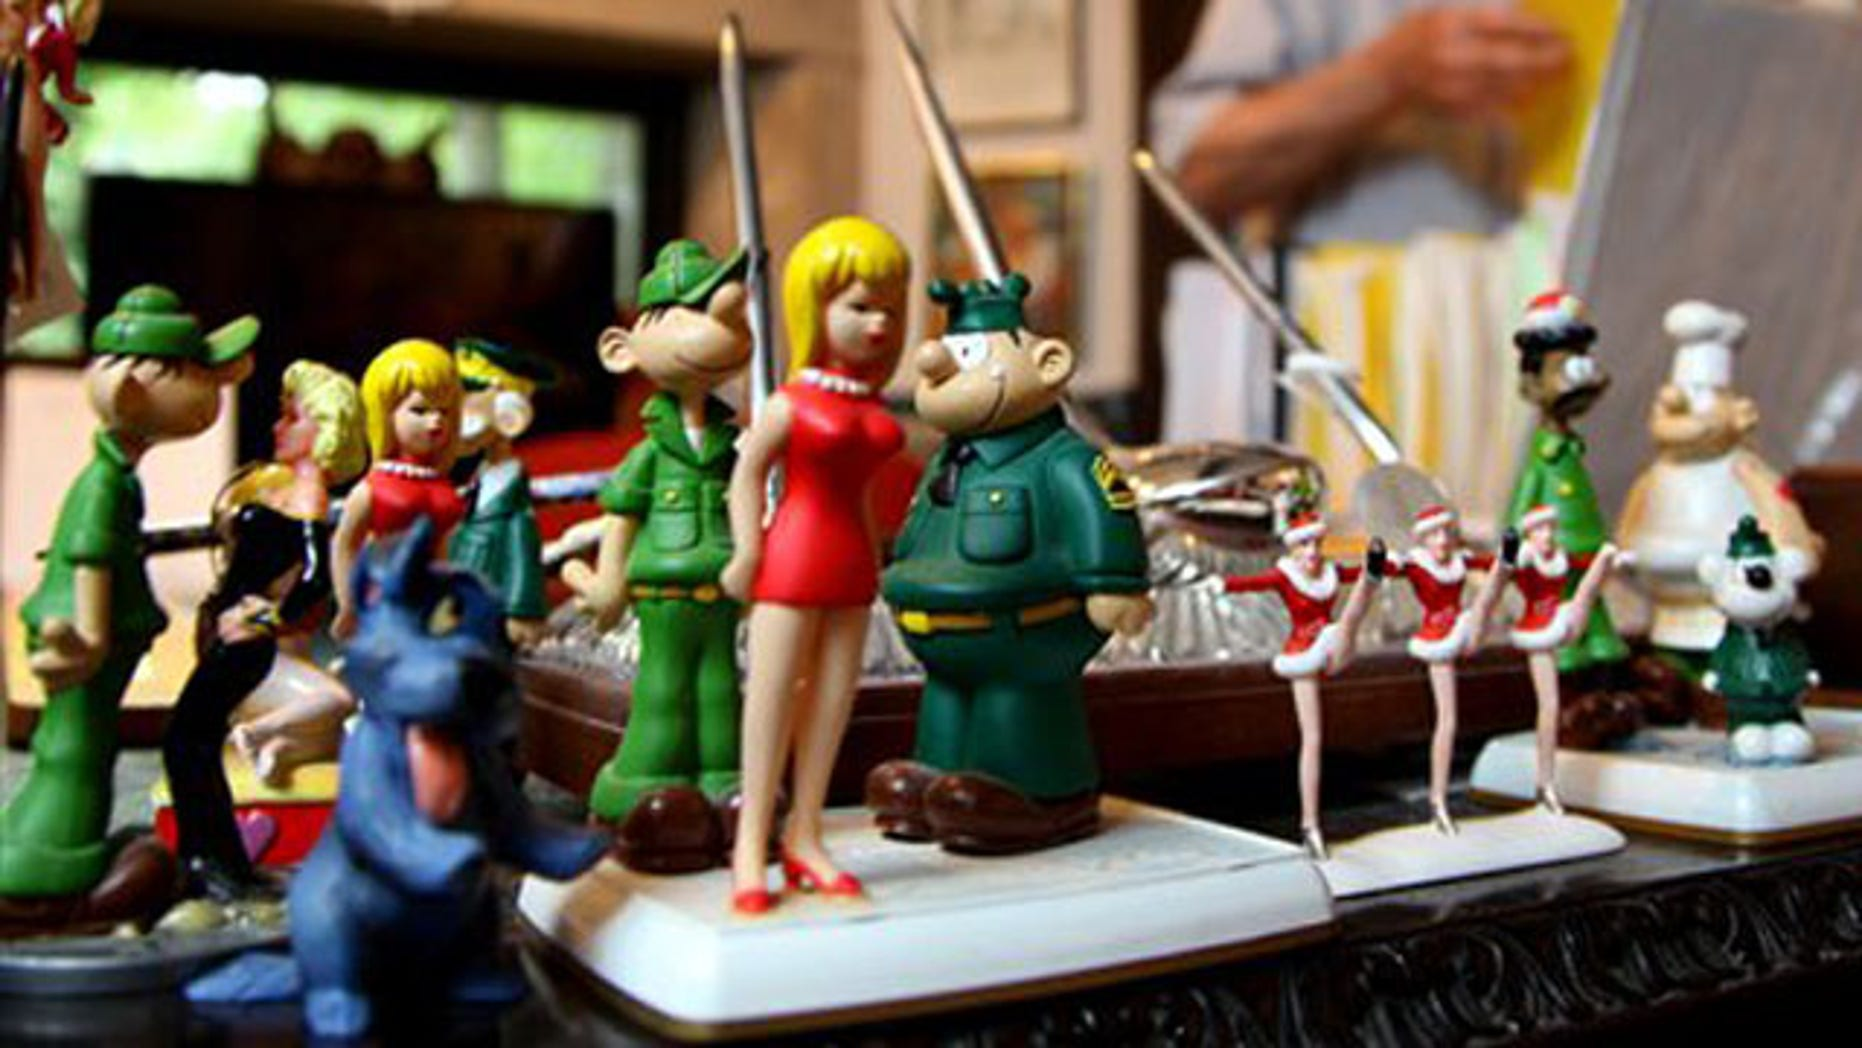 Aug. 16, 2010: Mort Walker's (artist and author of the Beetle Bailey comic strip)  studio in Stamford, Conn. (AP).